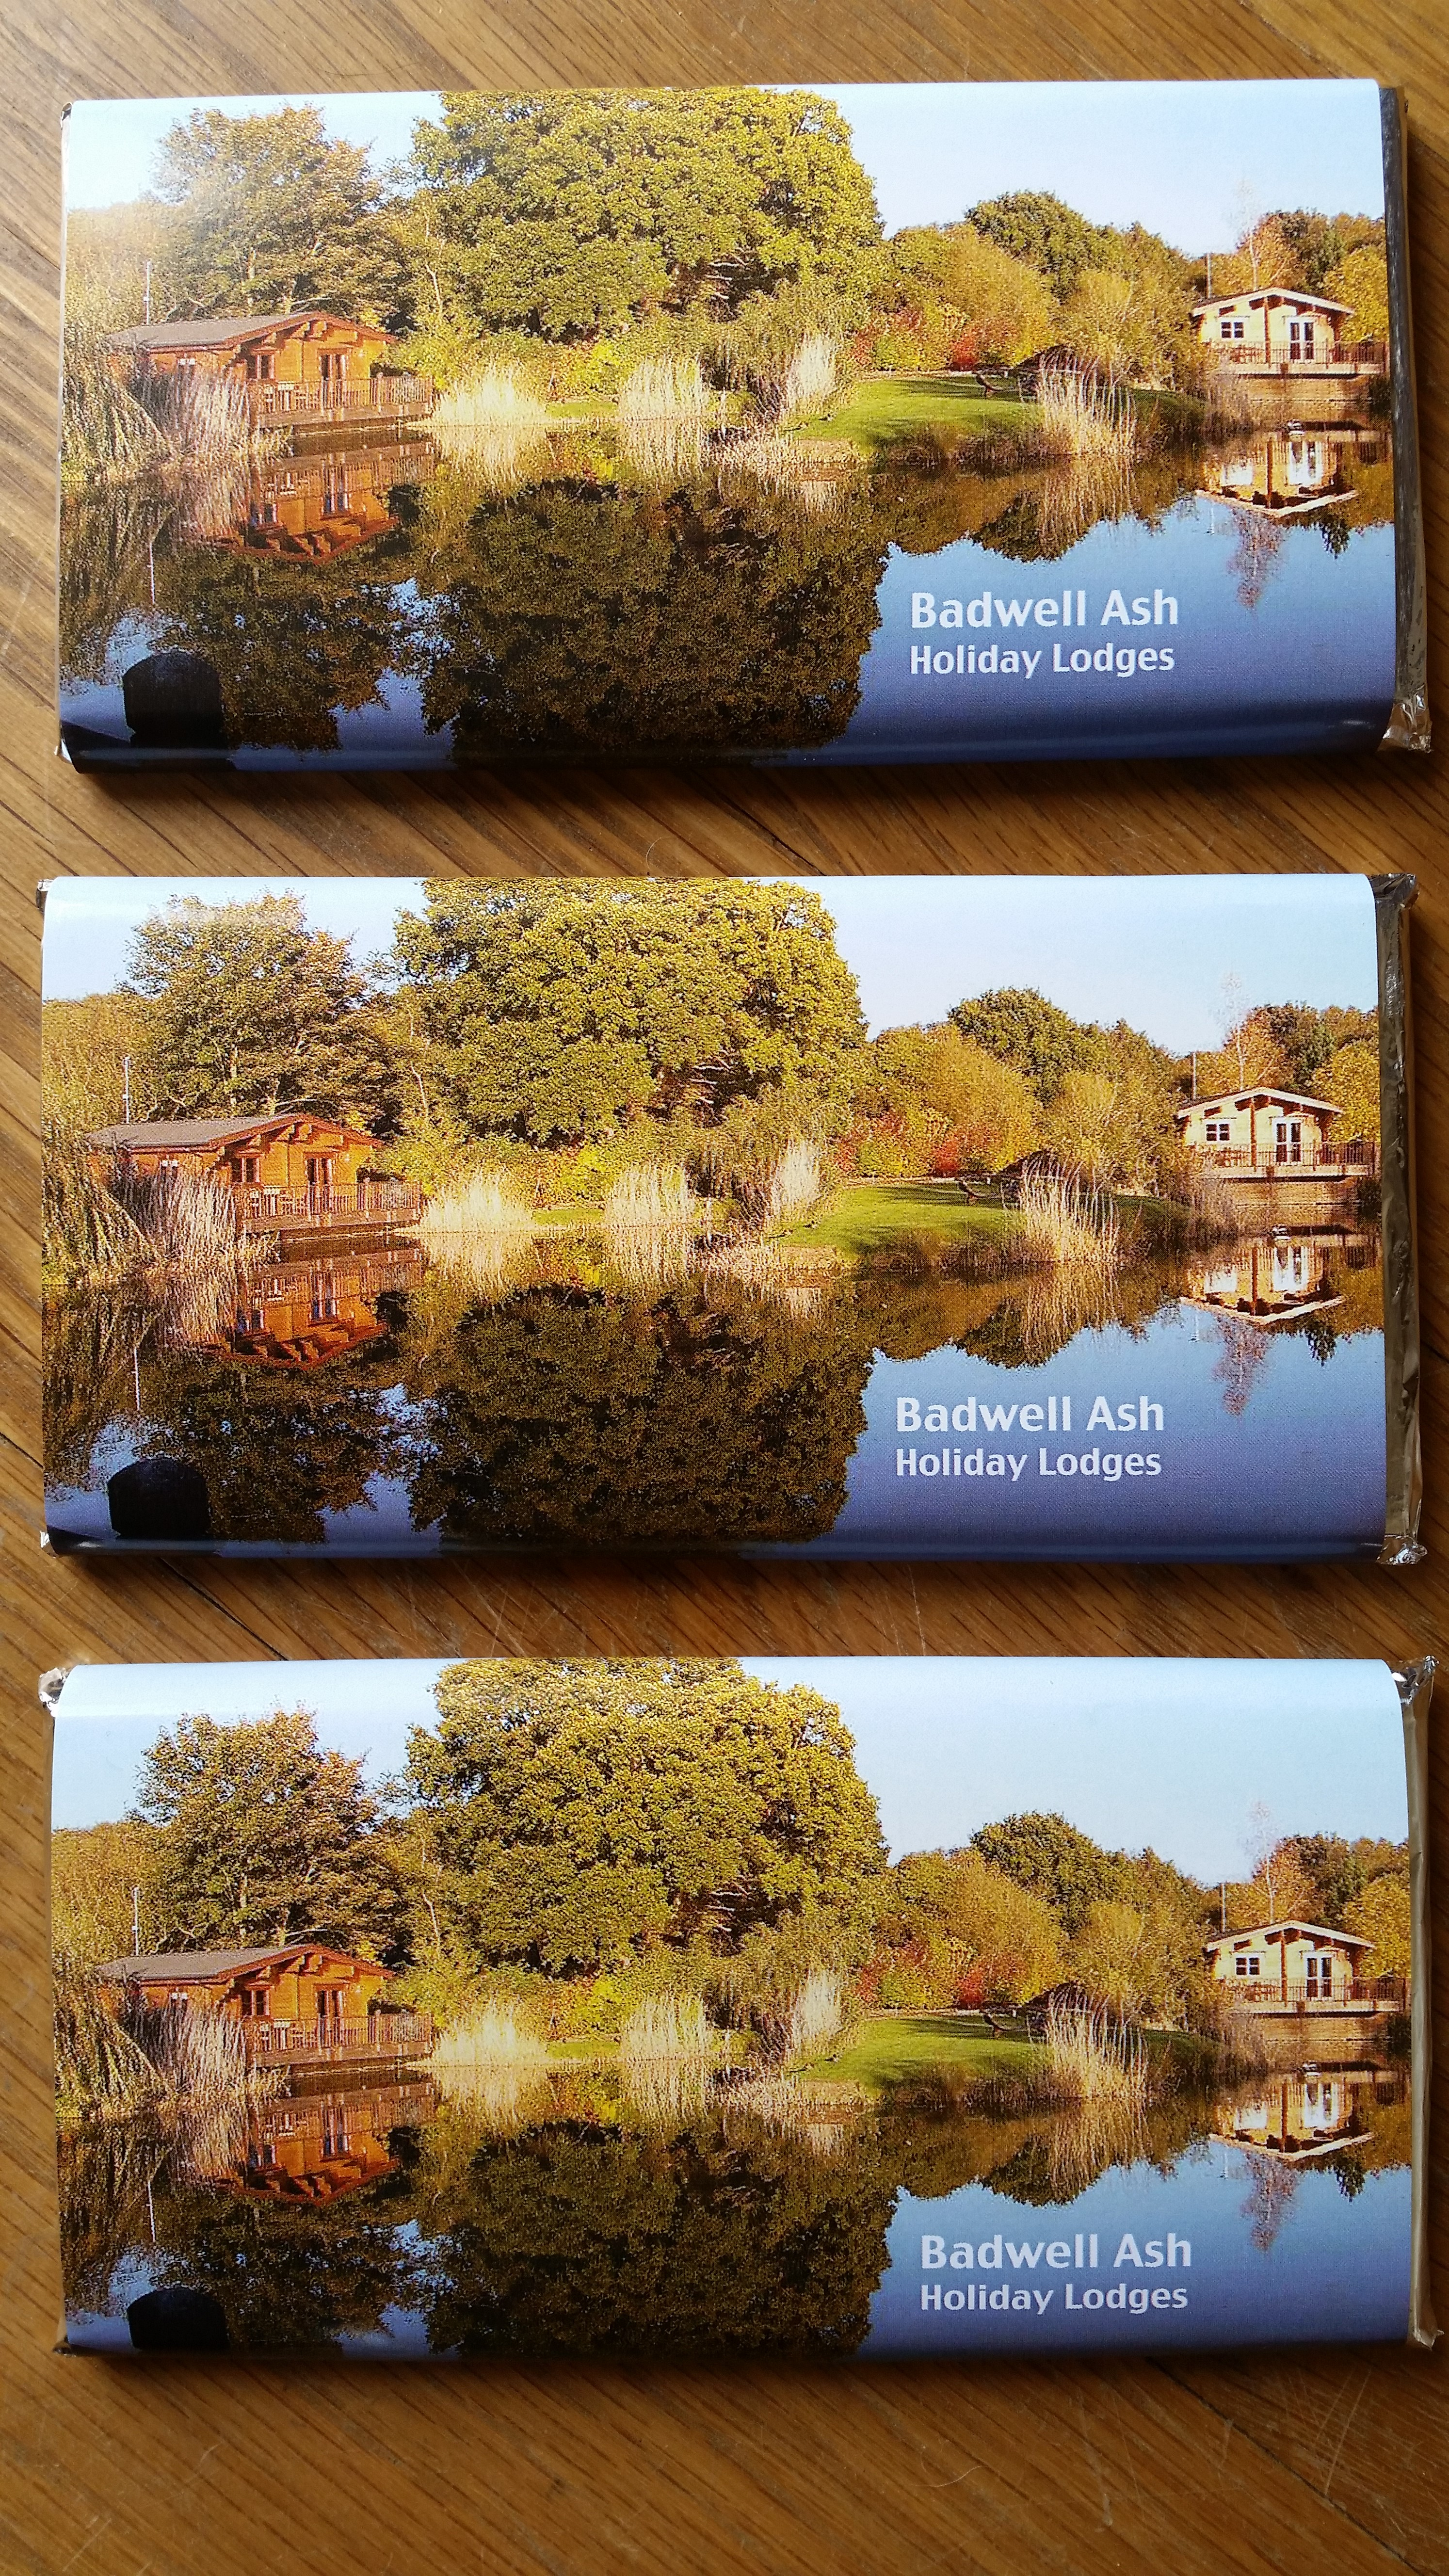 Personalised Chocolate Bars for Badwell Ash Holiday Lodges